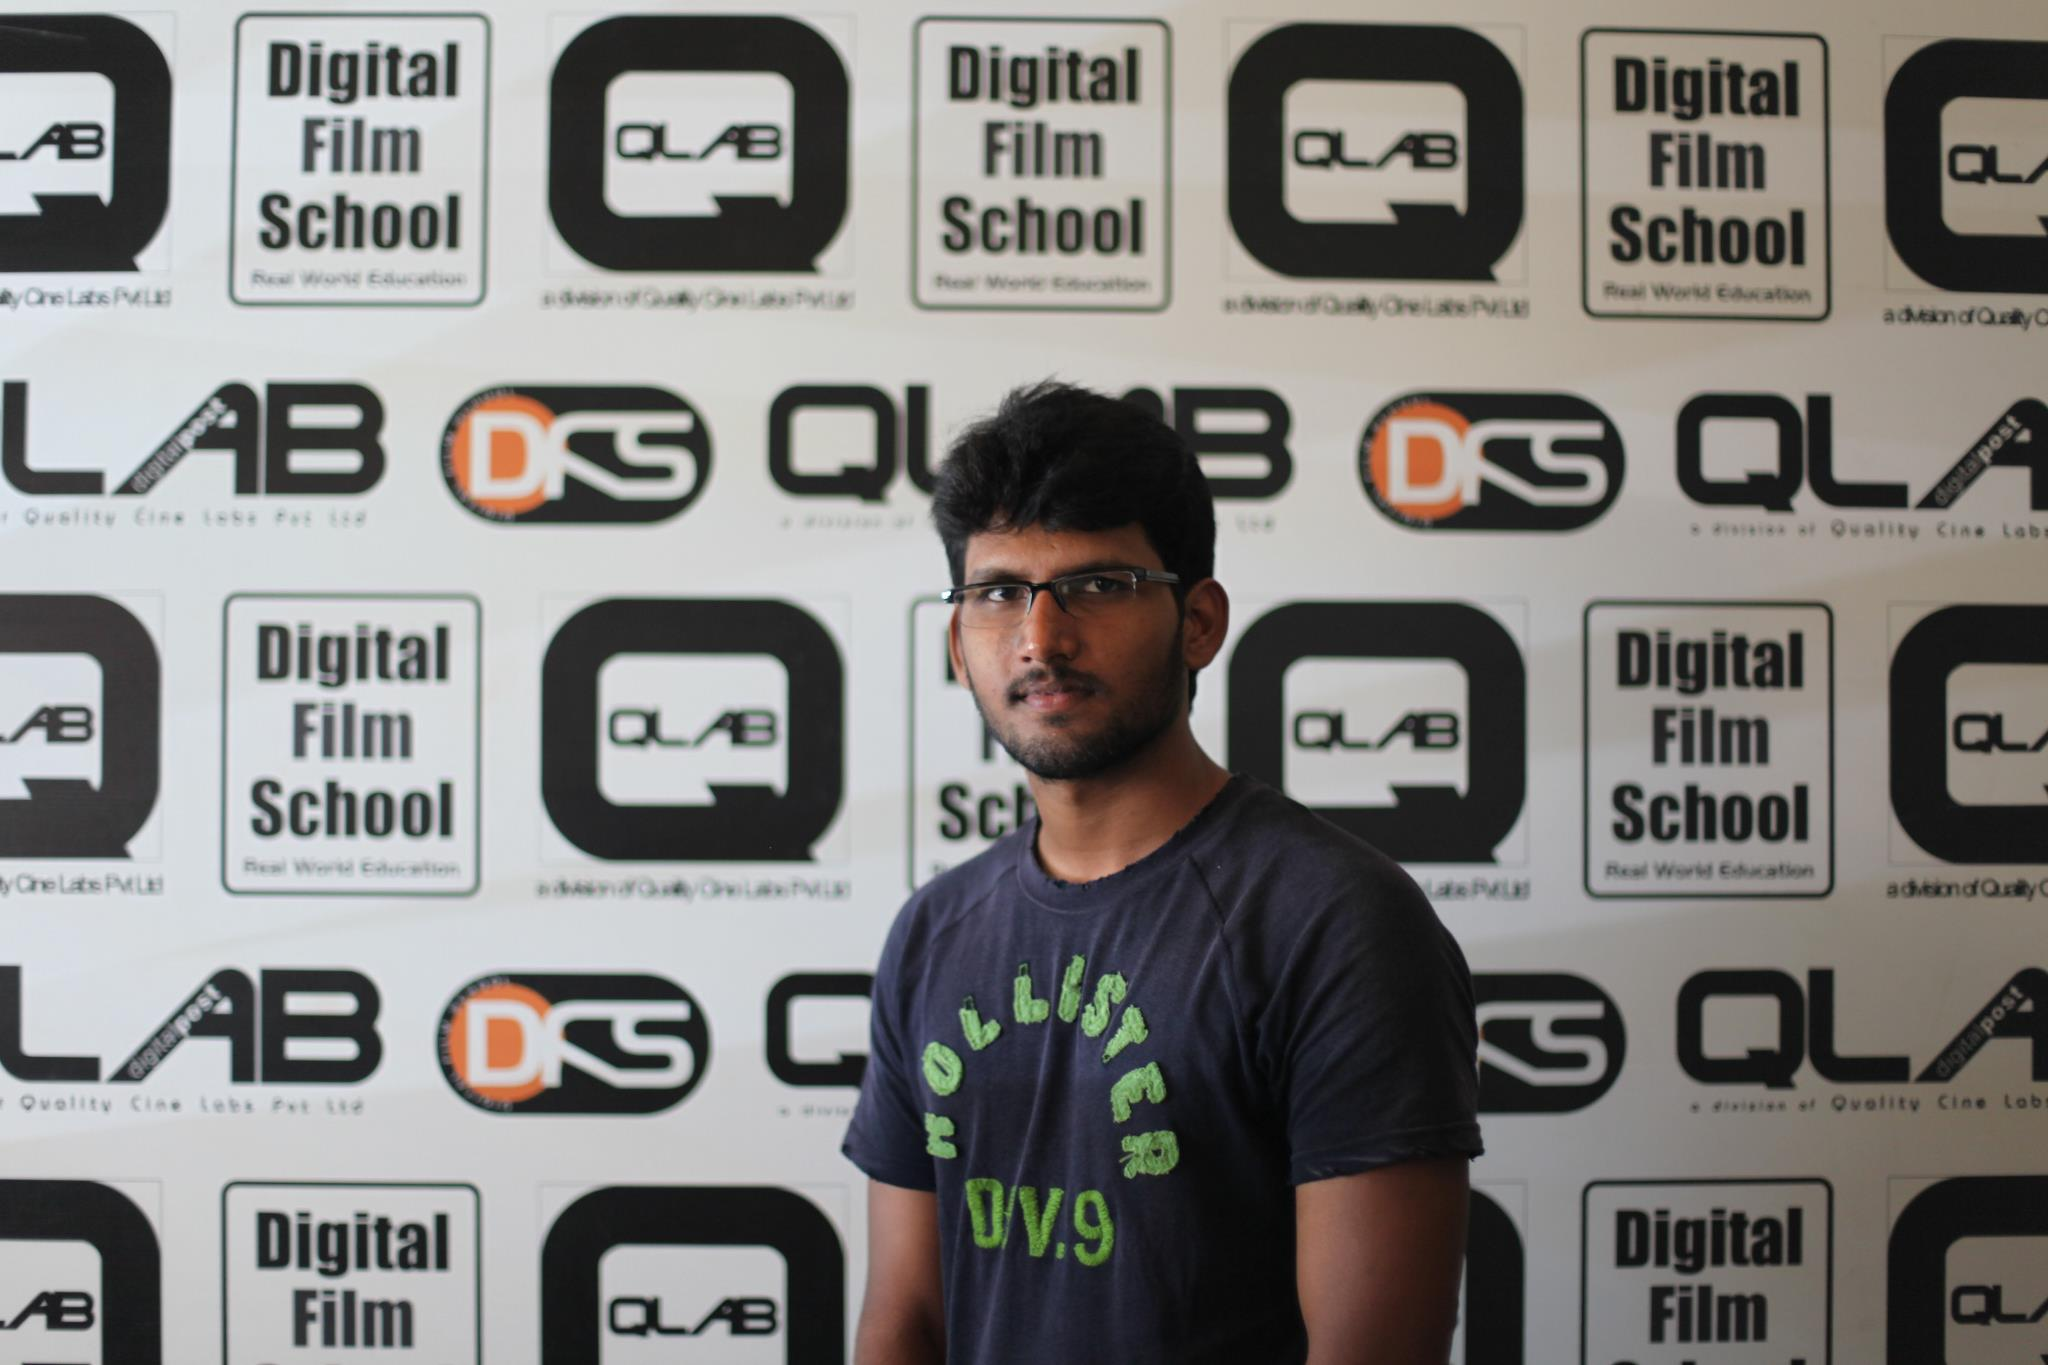 Digital Film School